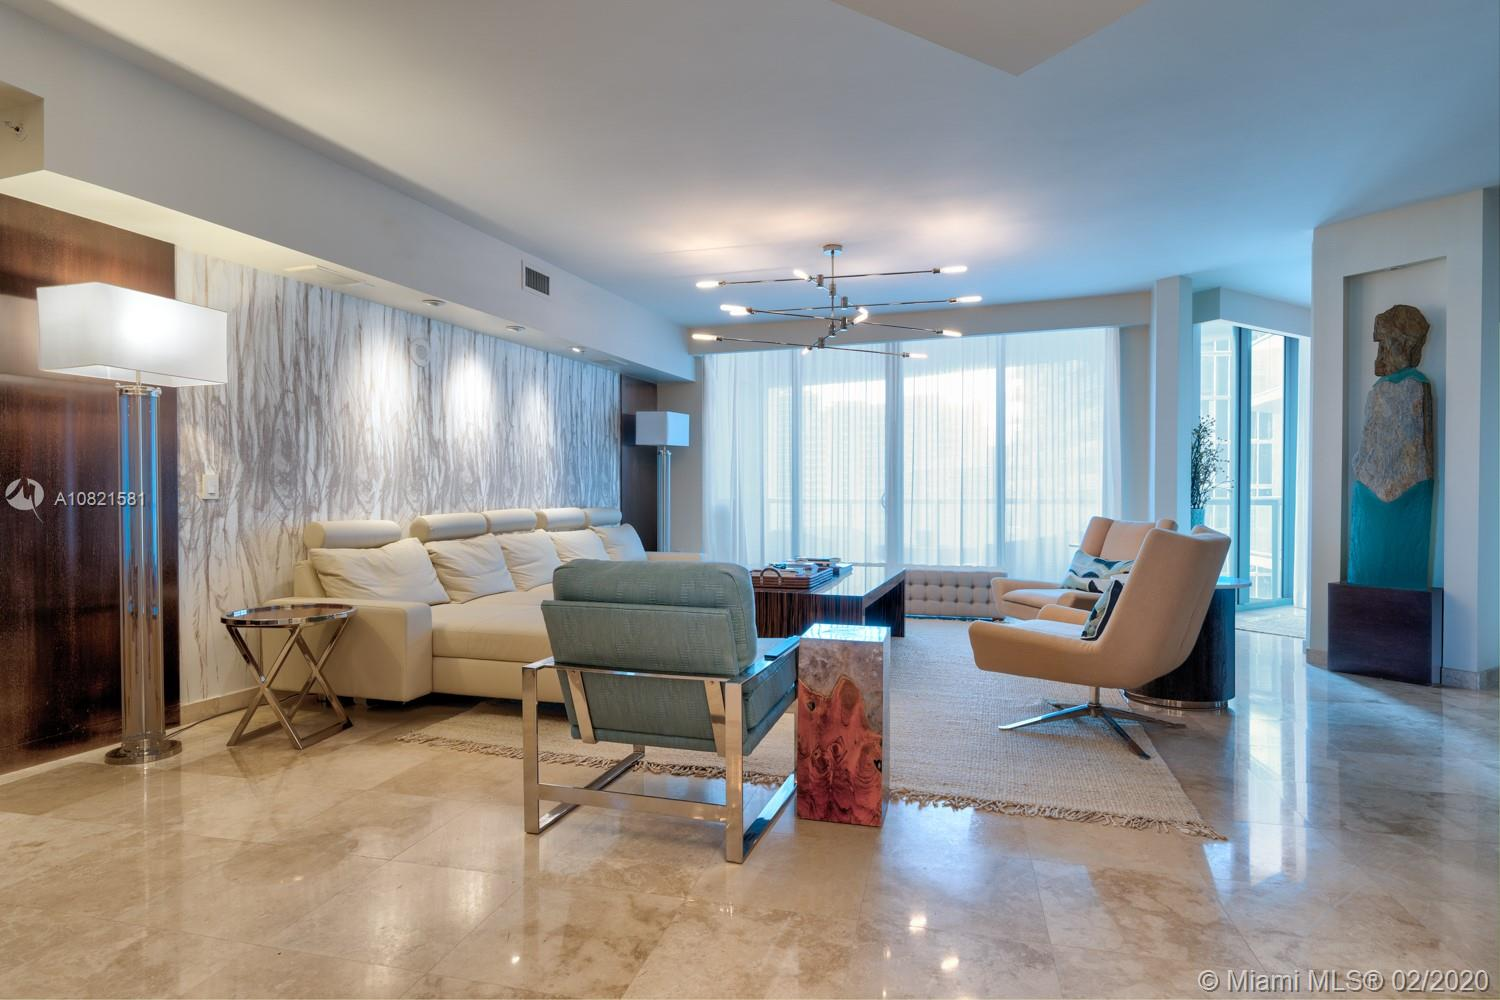 LUXURIOUS & SOPHISTICATED CUSTOMIZED COLUMBUS MODEL. ELEGANT TWO BEDROOM, THREE BATHROOM RESIDENCES WITH A PRIVATE ENTRY ON THE 29TH FLOOR. NO EXPENSE WAS SPARED,MARBLE FLOORS THROUGHOUT, NEW BATHROOMS, CUSTOM CLOSETS WITH A WET BAR WITH ONYX INLAID. THERE ARE TWO TERRACES ONE LARGE ONE OFF THE LIVING ROOM TO EAT AND RELAX. YOU COULD NOT FIND A BETTER UNIT FOR ENTERTAINING. THIS CONDO BY RIVERWALK PROVIDES THE BEST OF DOWNTOWN LIVING AS YOU CAN WALK TO ALL THE RESTAURANTS AND SHOPS ON LOS OLAS BLVD. GORGEOUS POOL DECK, GARDENS AND BBQ AREA. MOVE IN READY! INVESTORS WELCOME